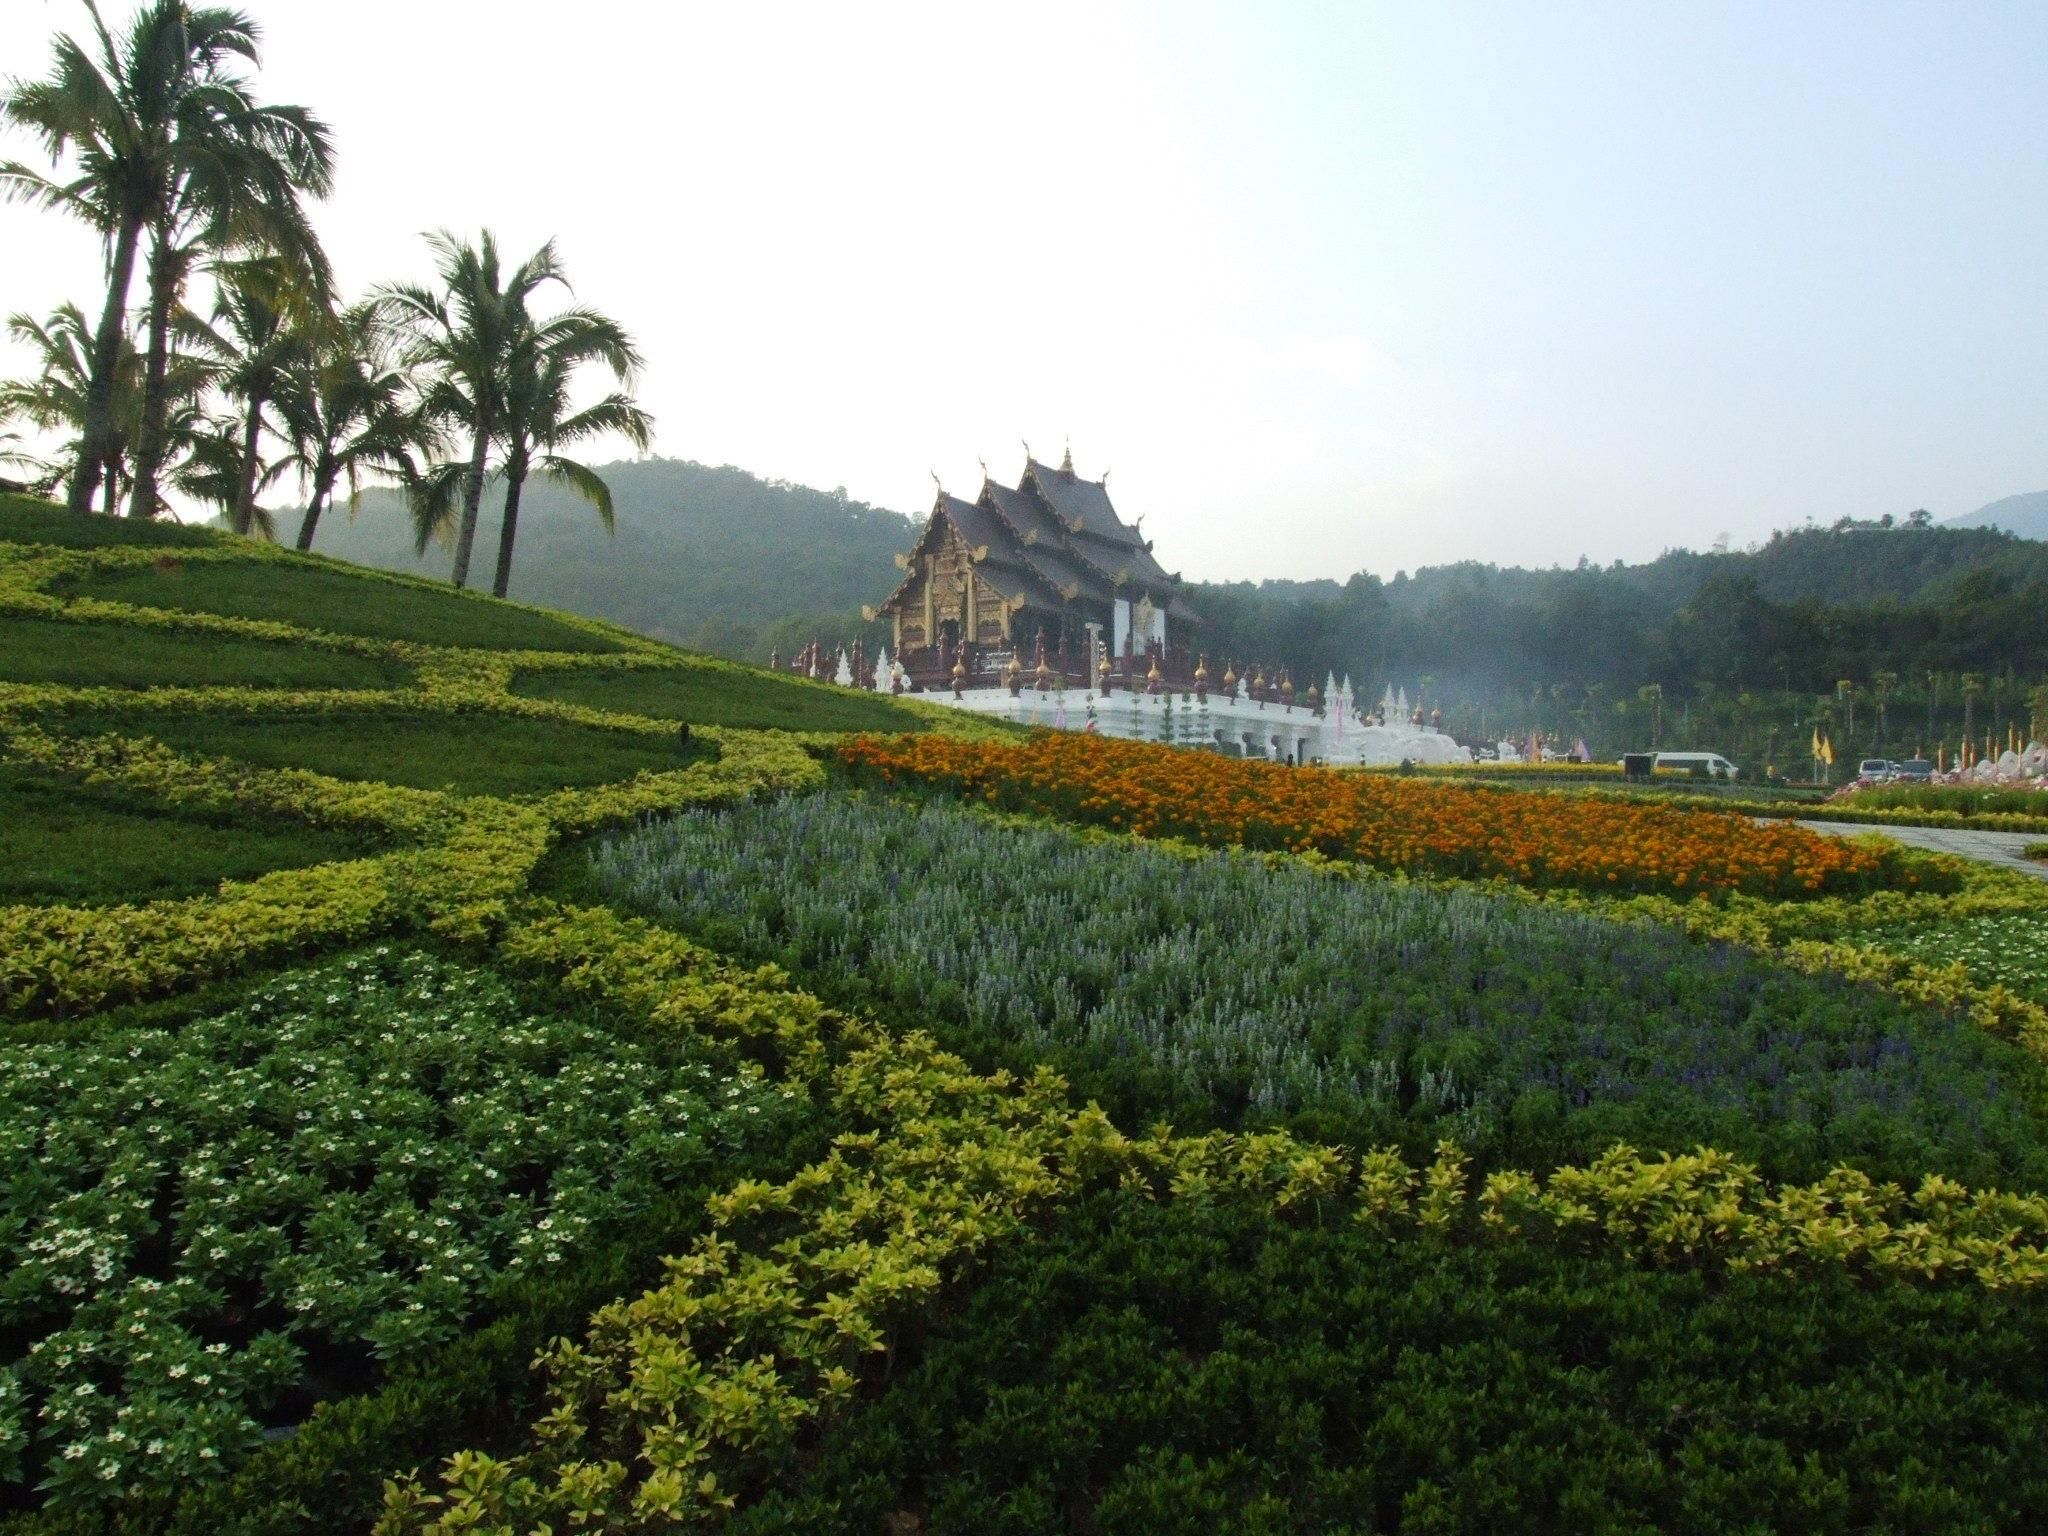 Garden in the resort of Chiang Mai, Thailand wallpapers and image